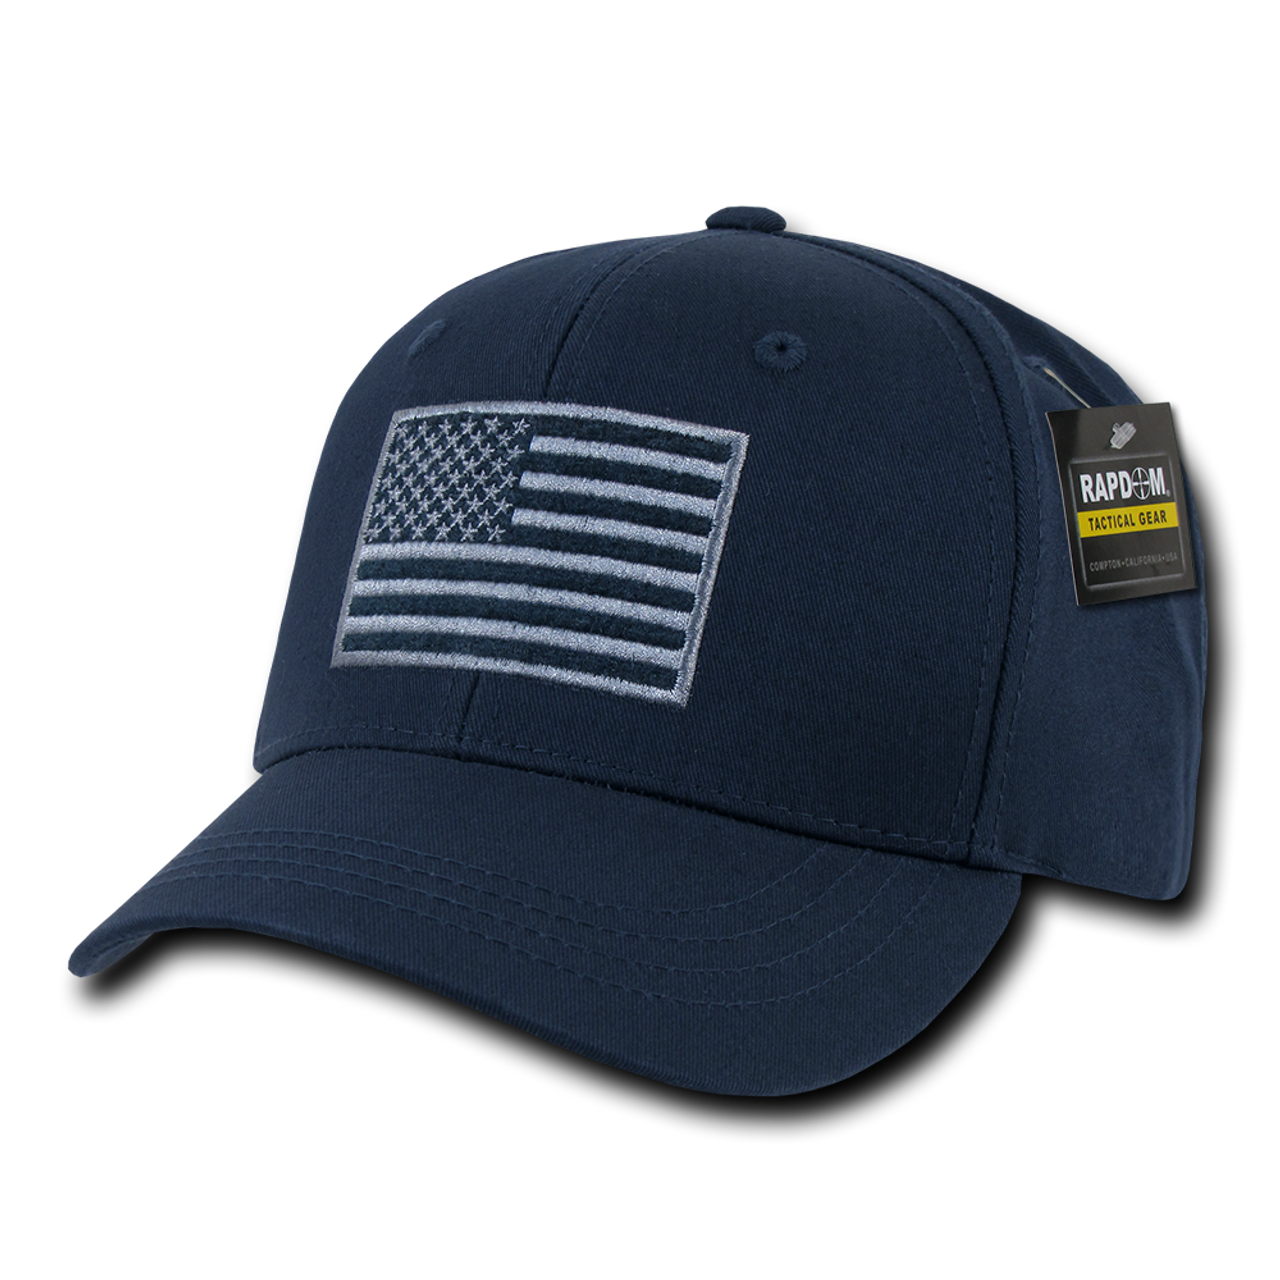 7b0beb4b7c480 ... T76 - Tactical Operator Cap - American Flag Subdued - Dark Blue ...